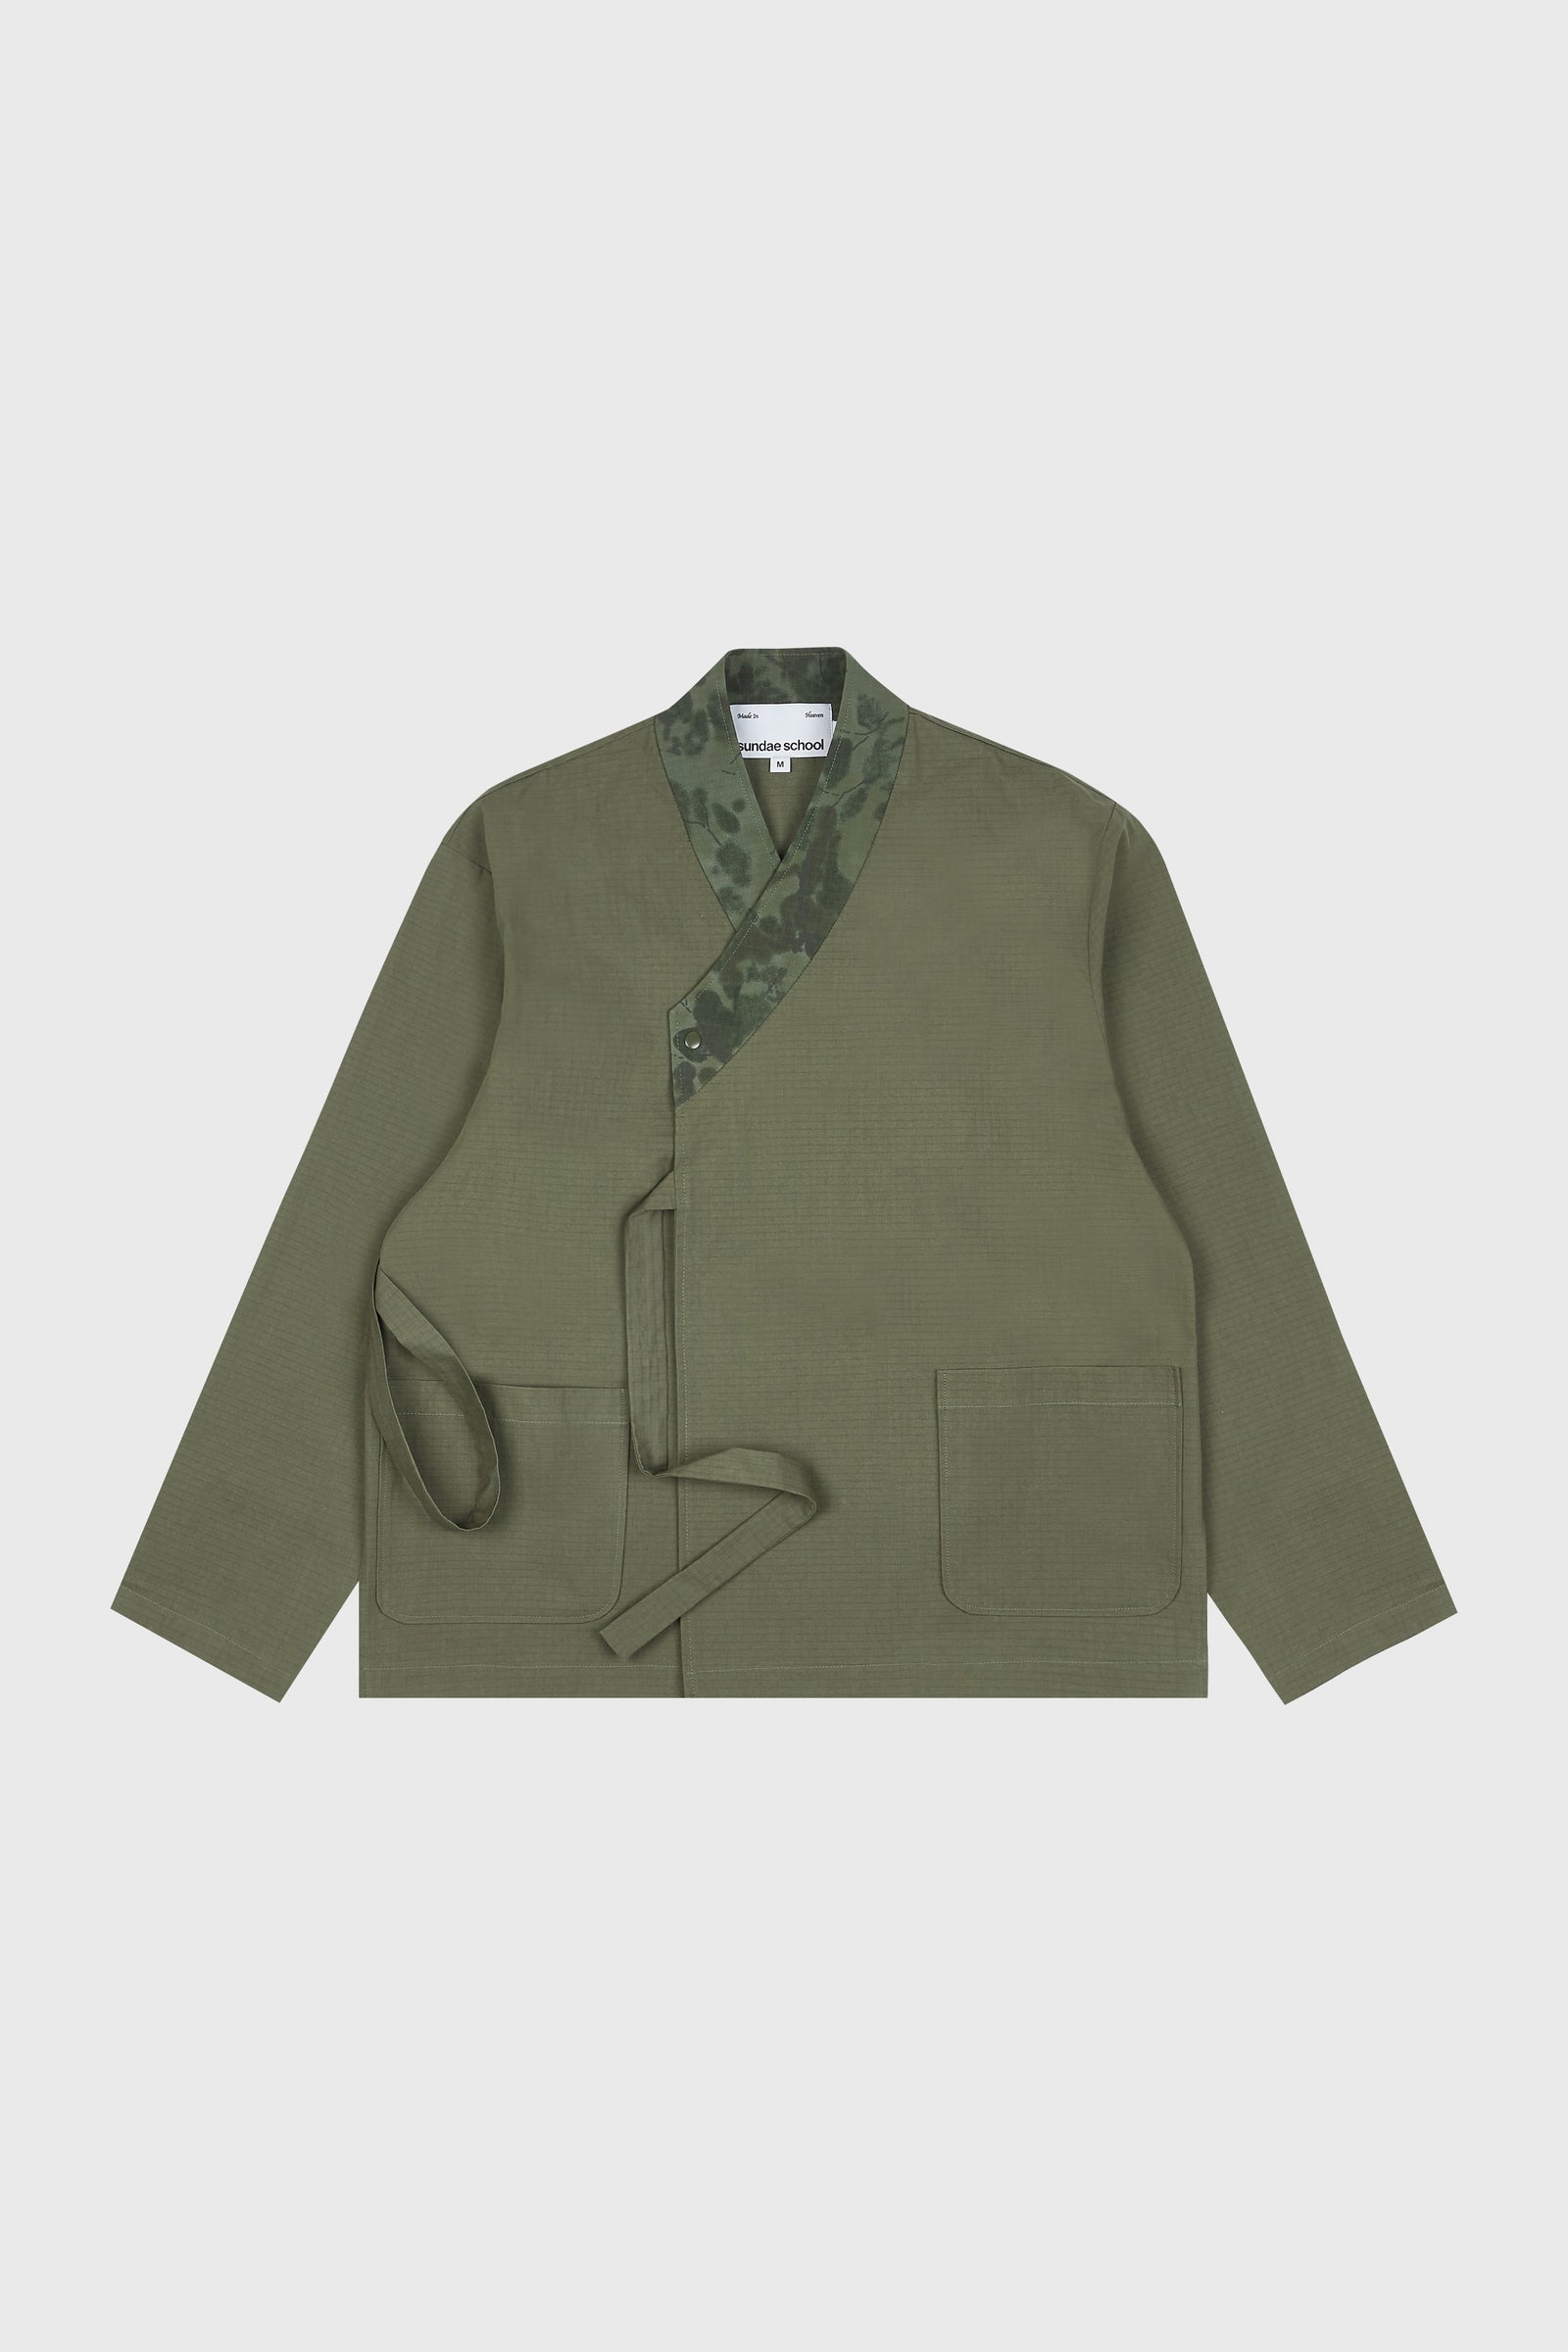 Photo of Army Green Double Layered Jeogori Bomber Jacket, number 8